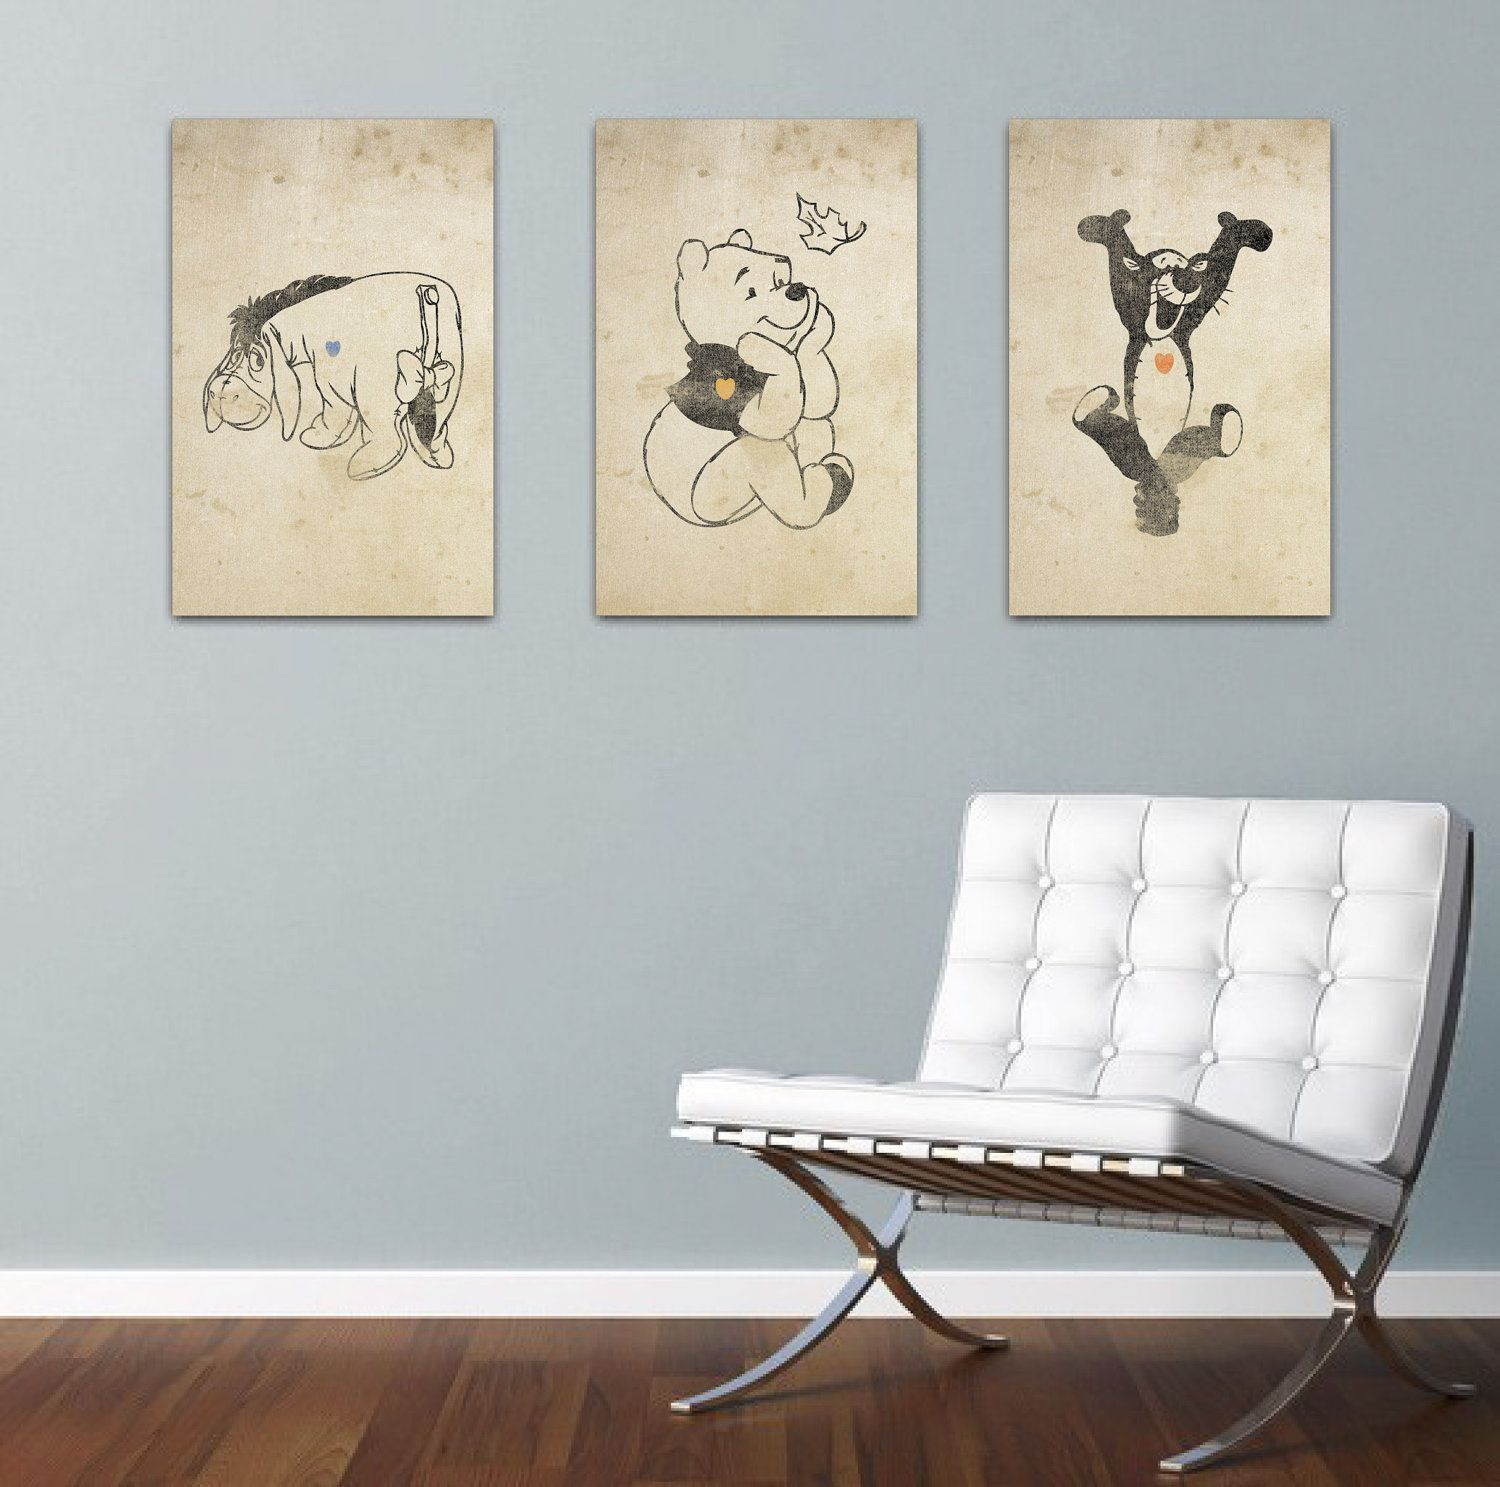 Pooh Eeyore And Tigger Inspired Silhouette 3 11x17 Art Prints With